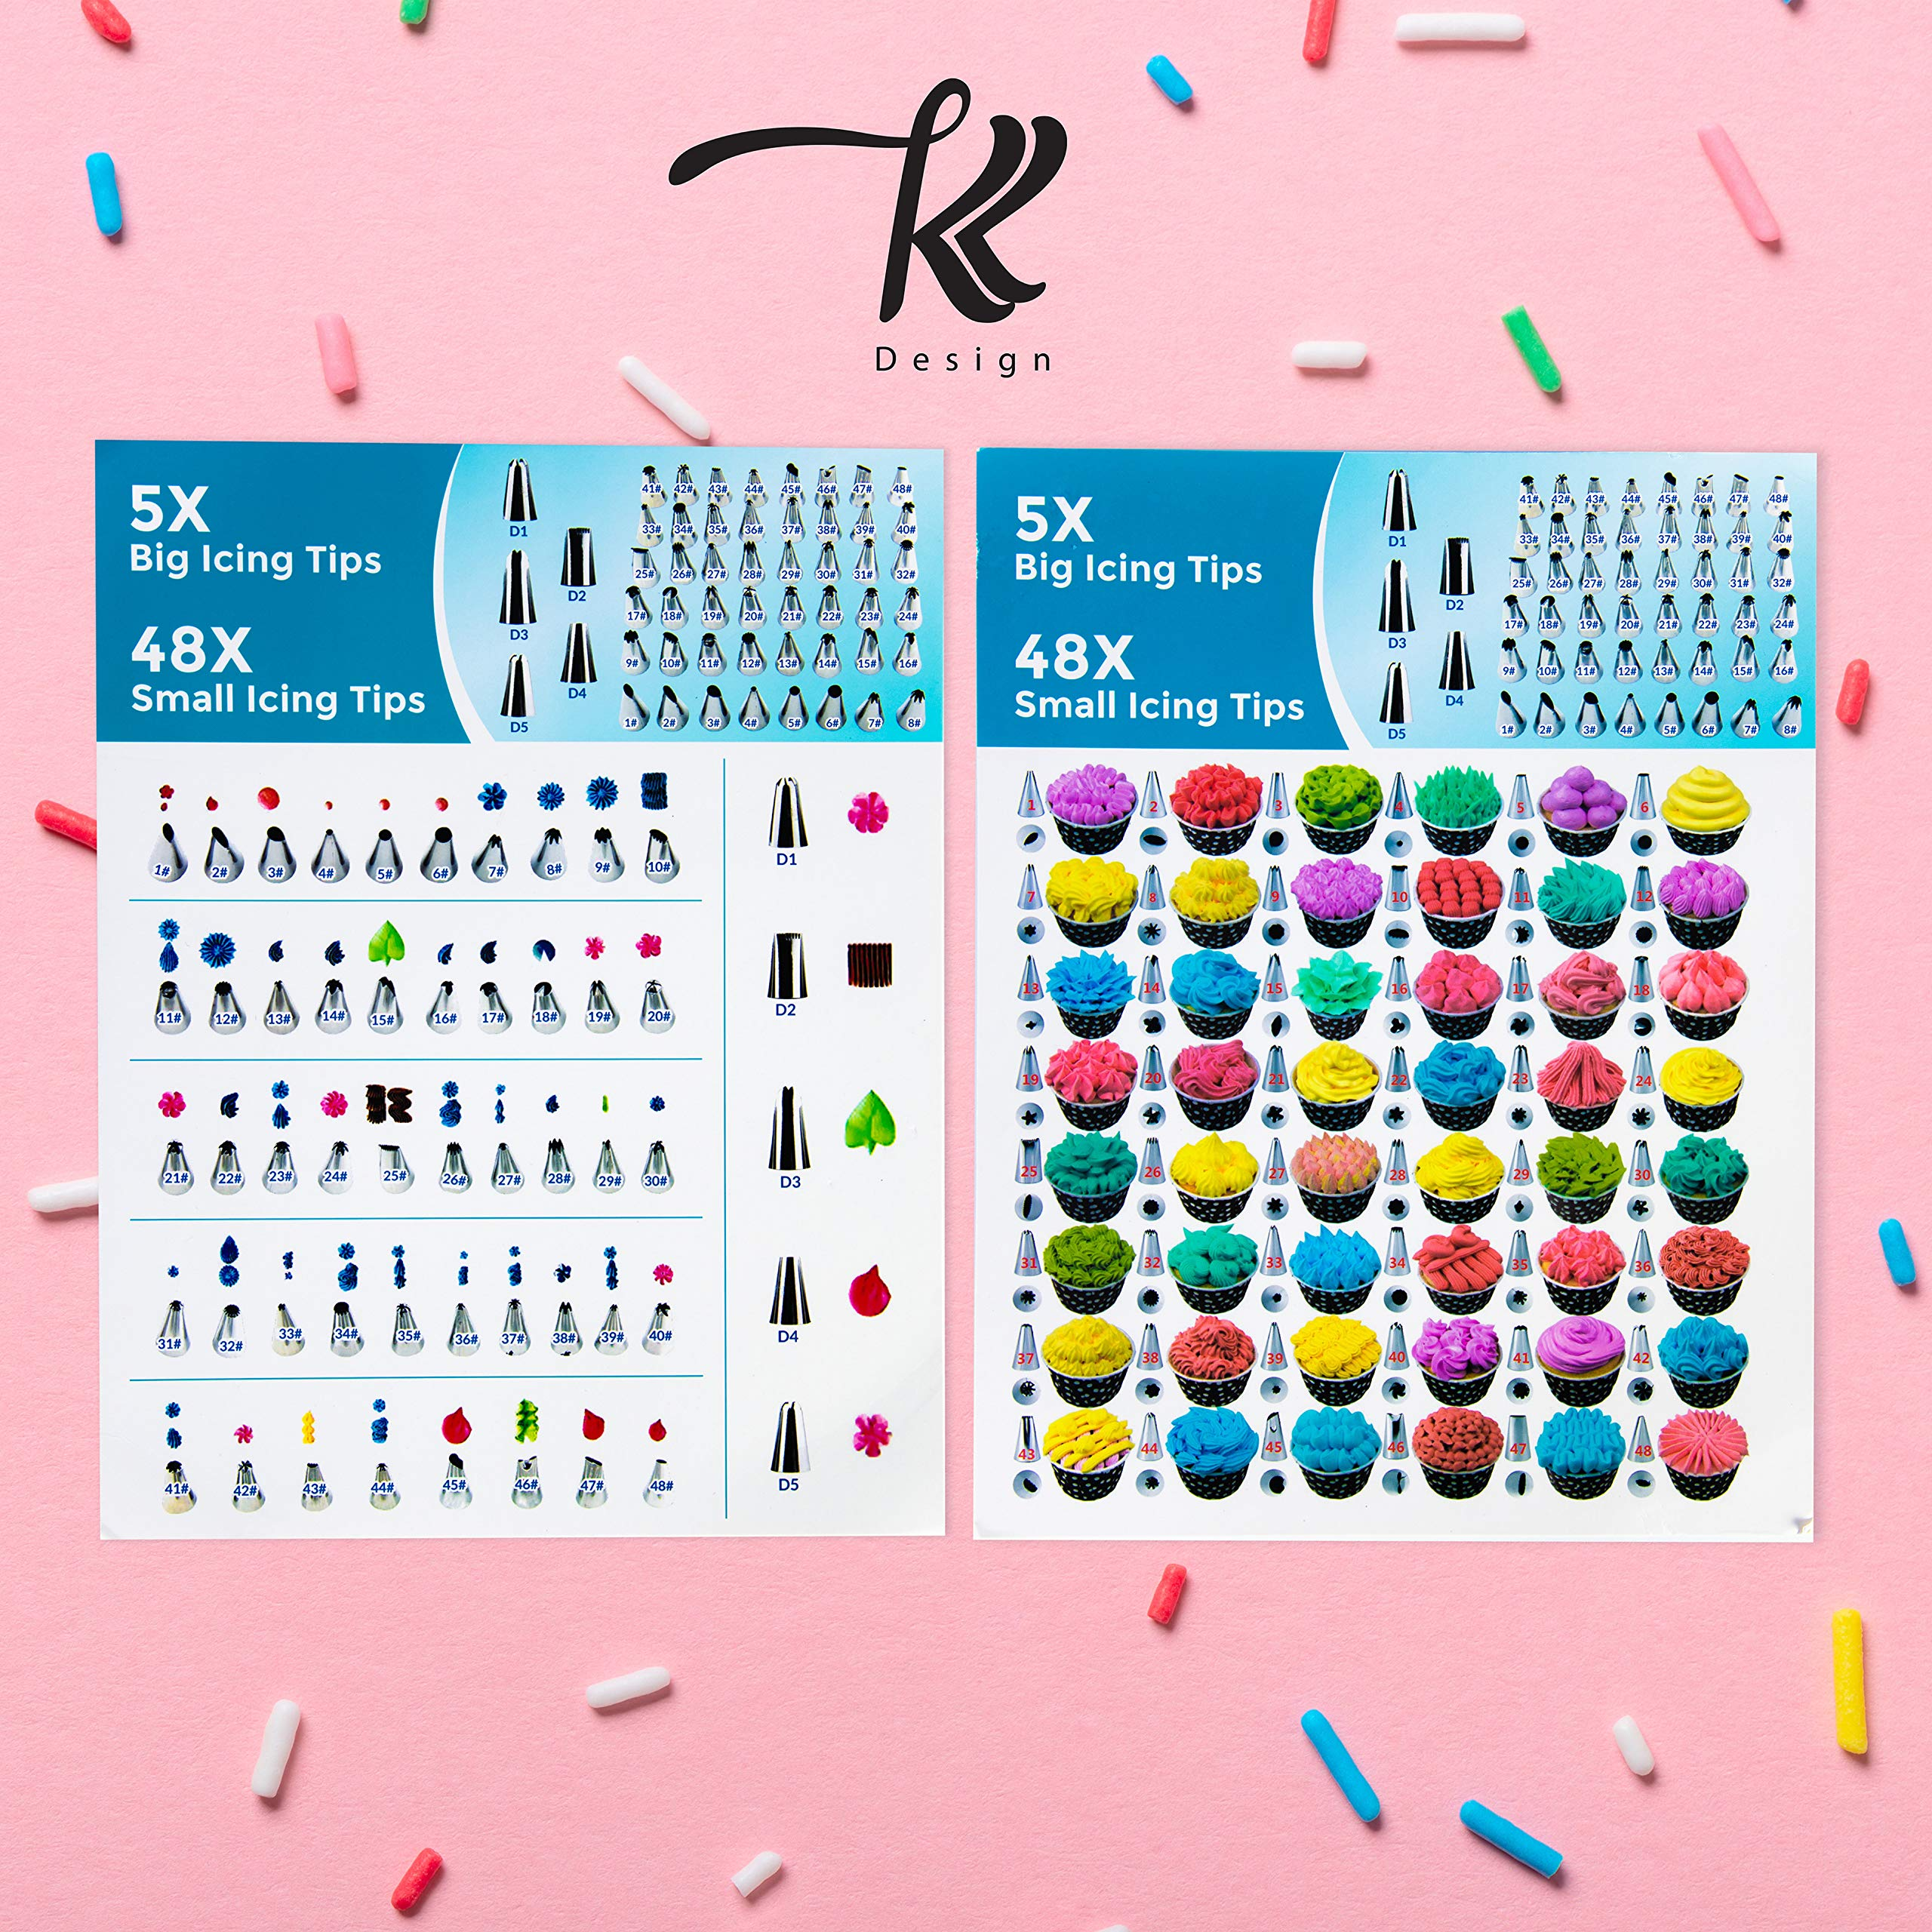 186 Pcs Cake Decorating Supplies Kit,Aluminium Rotating Turntable Stand,Frosting Piping Tips,100 Disposable Bags,Couplers,Scrapers,Spatulas,Cutter,Smoother,Flower Nails,Lifter,Baking Tools Set by K&K Design (Image #3)